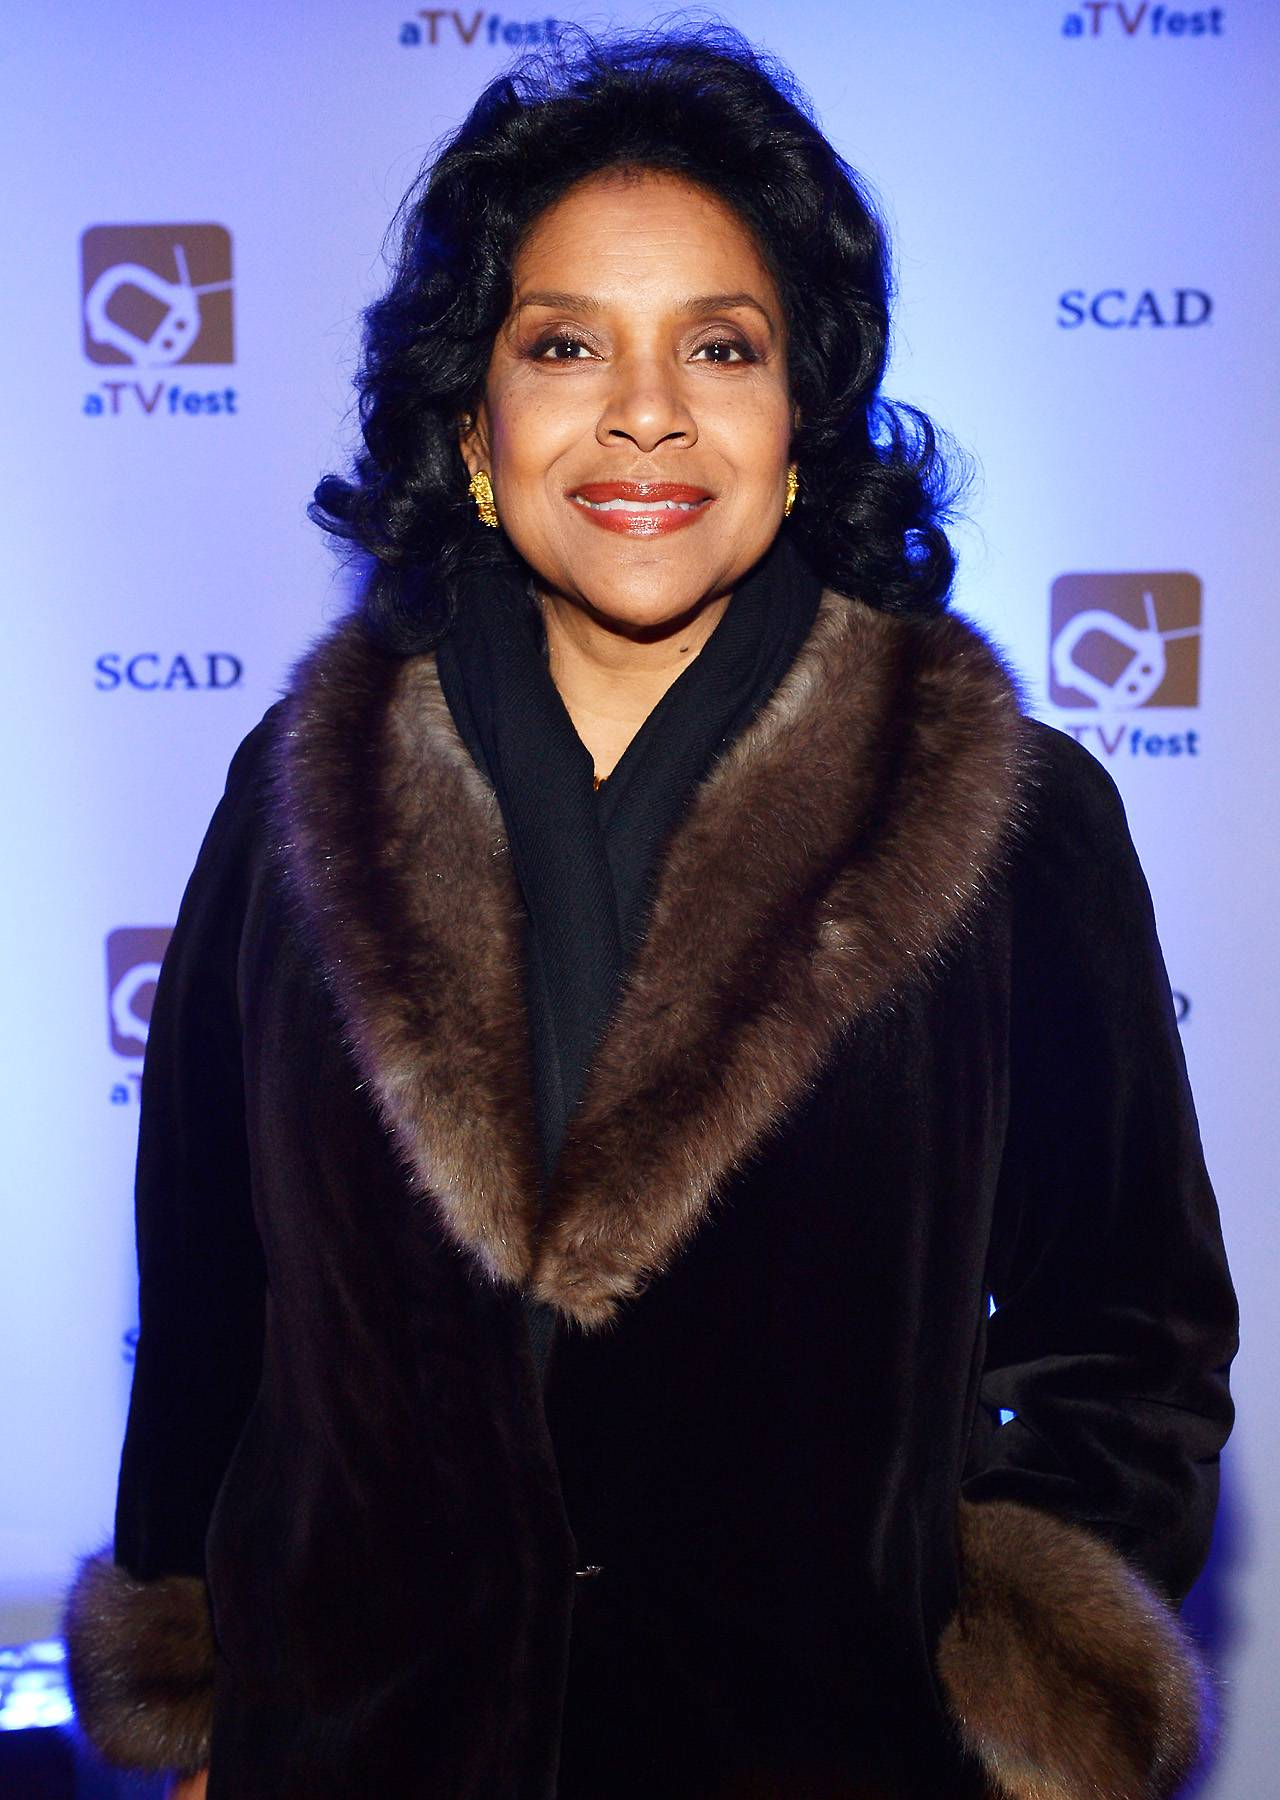 Calling the Shots - Aside from being an actress and an intellectual, Rash?d also has her hands in several business and educational ventures to better other artists who may learn from her expertise. Namely, she currently sits on the Board of Directors of The Alliance Theatre Company in Atlanta, Georgia.(Photo: Rick Diamond/Getty Images for Savannah College of Art and Design)